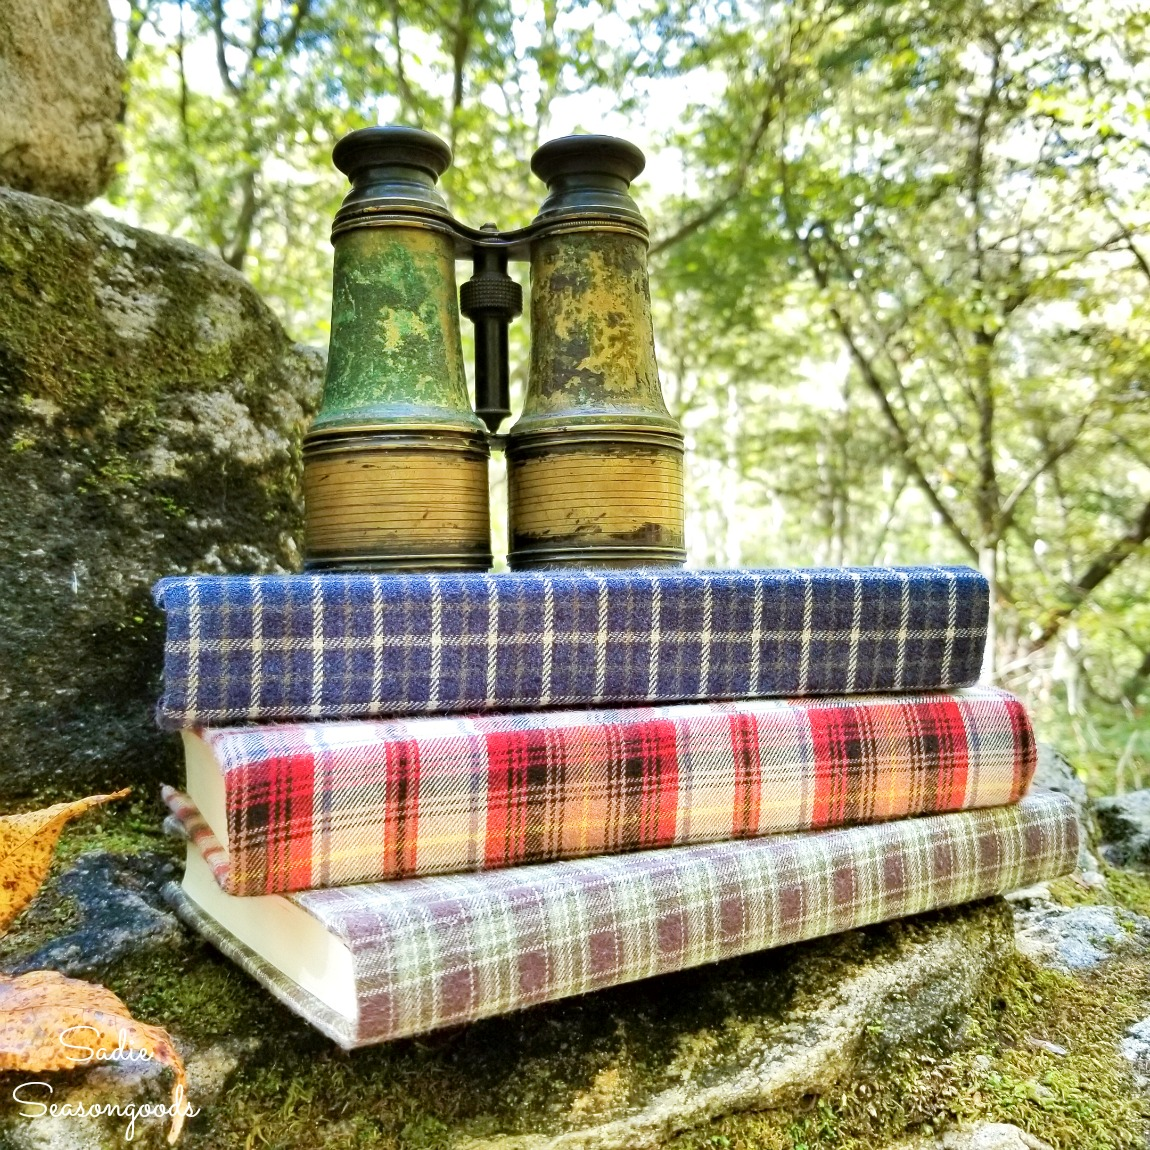 Book Decor for a Cozy Home with Flannel Shirts